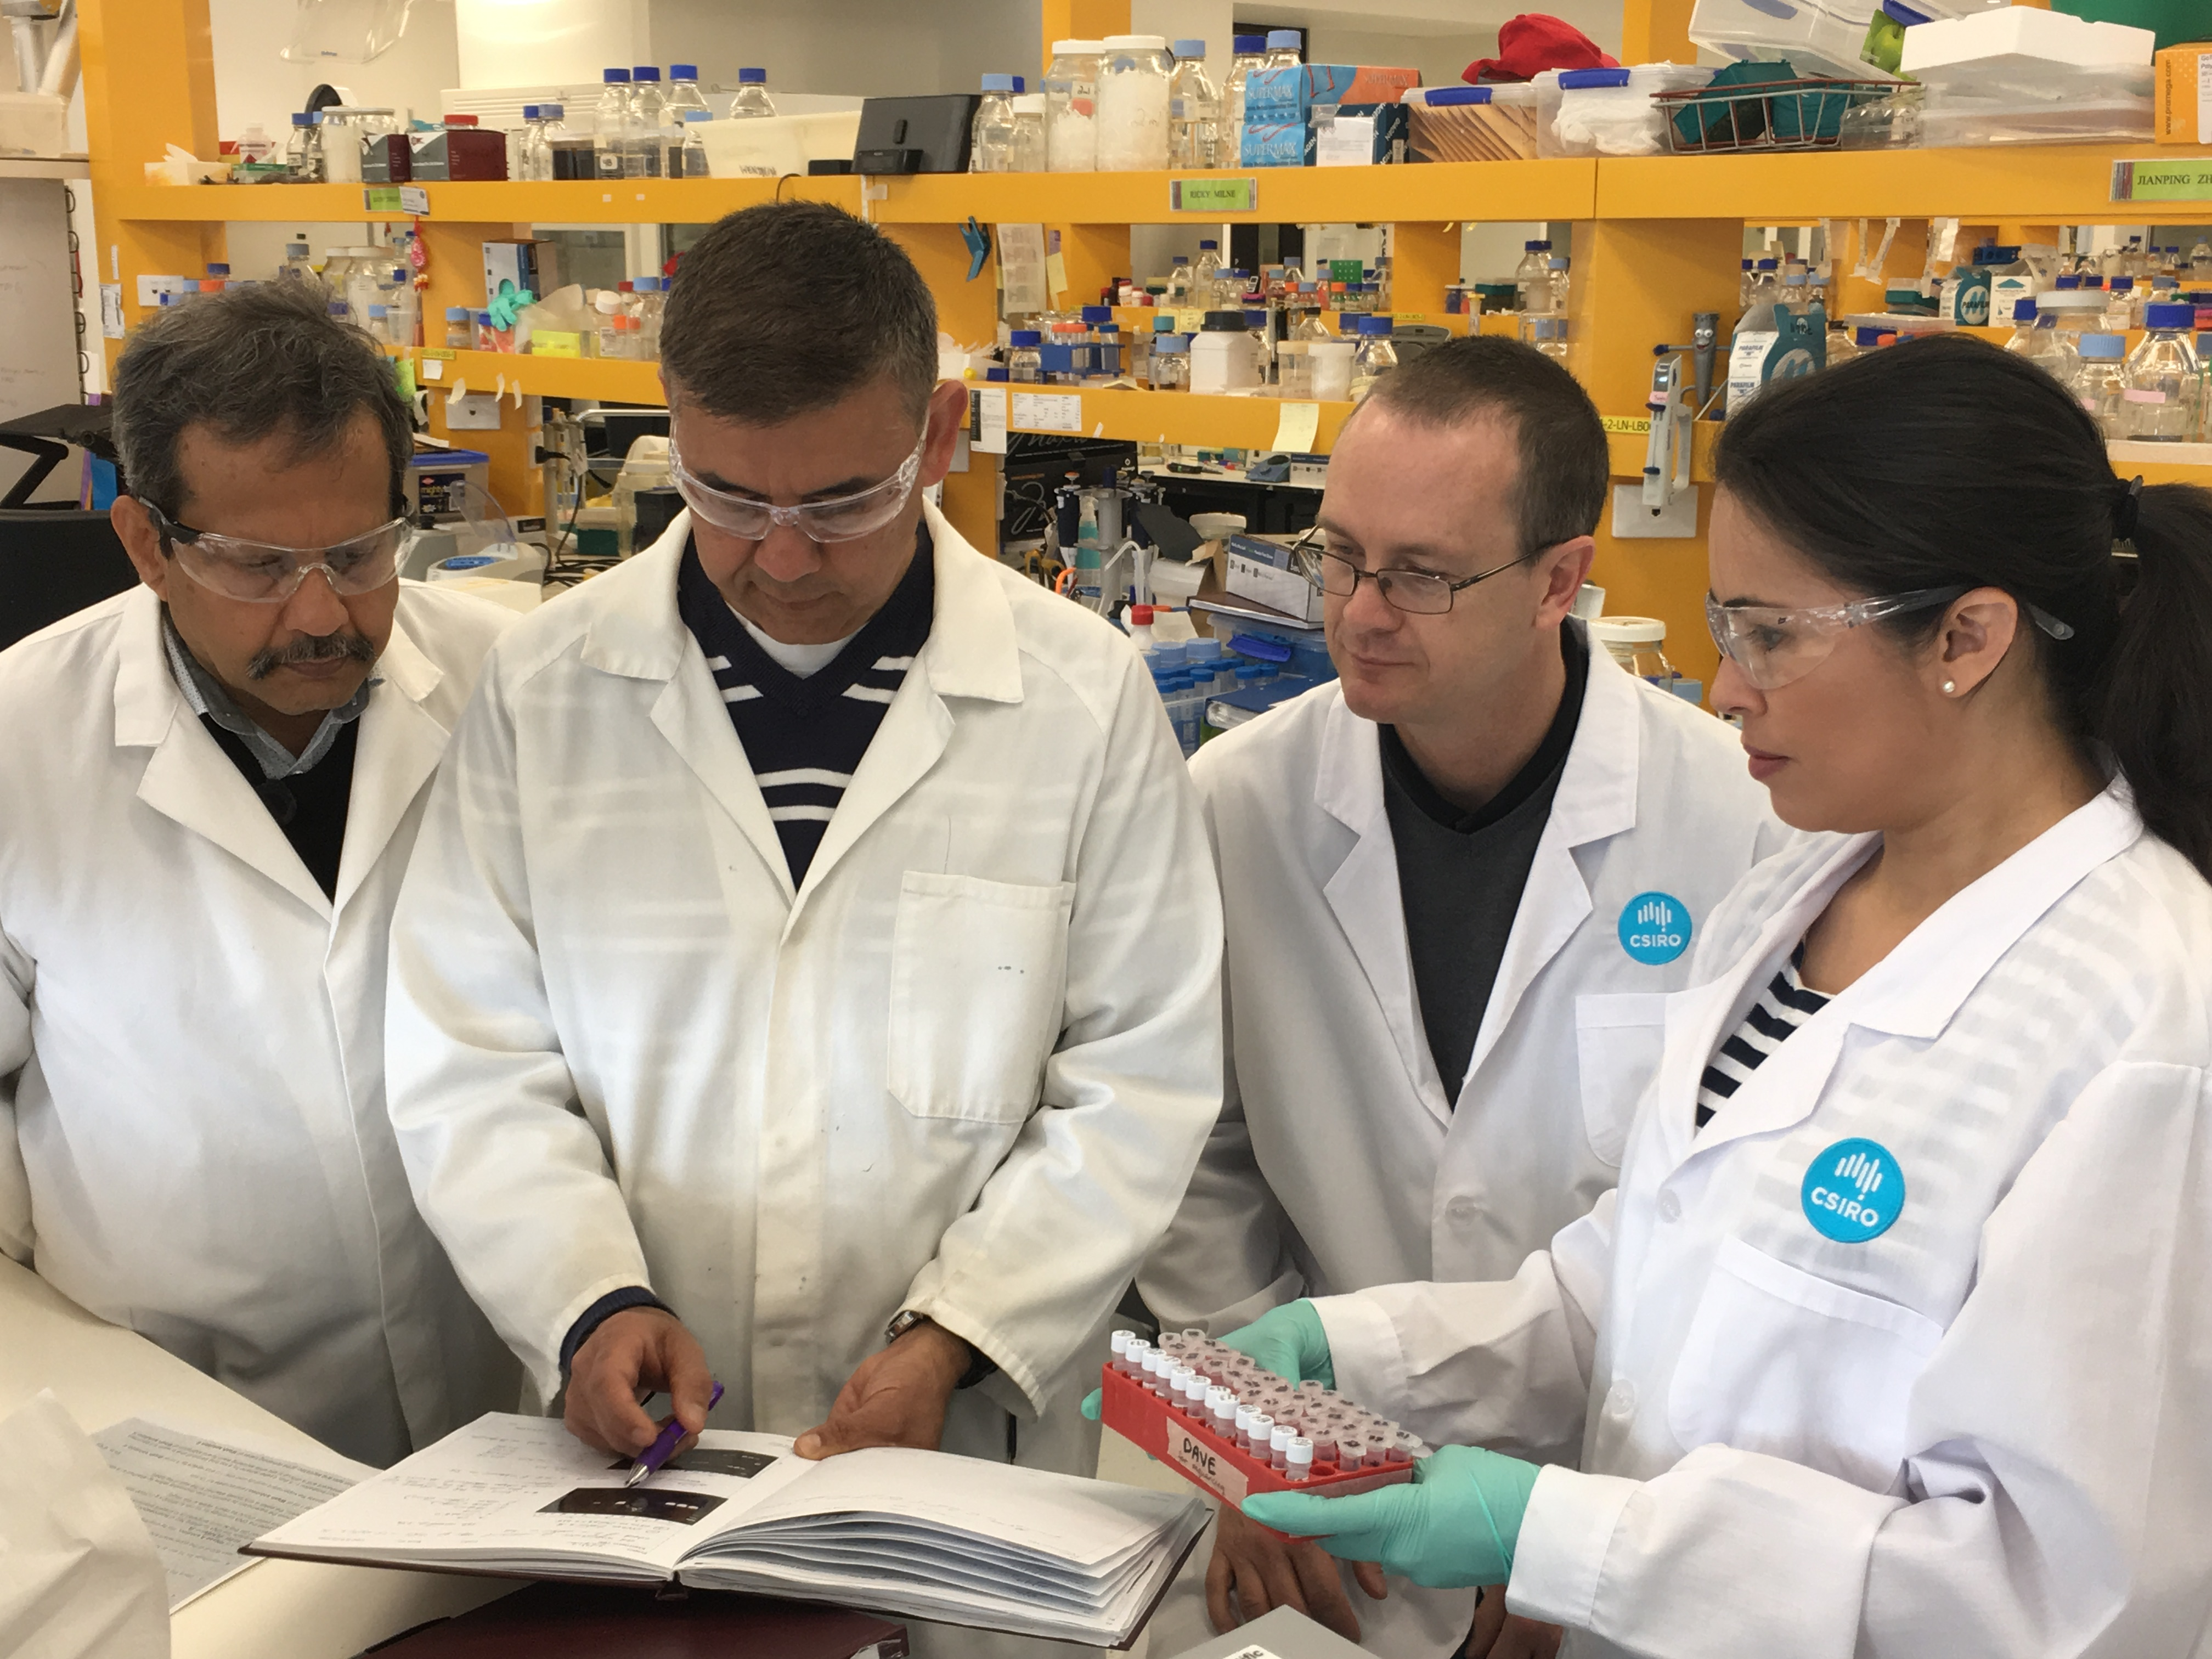 Four scientists in lab coats in a lab looking at a book and some samples in test tubes of cereal rust